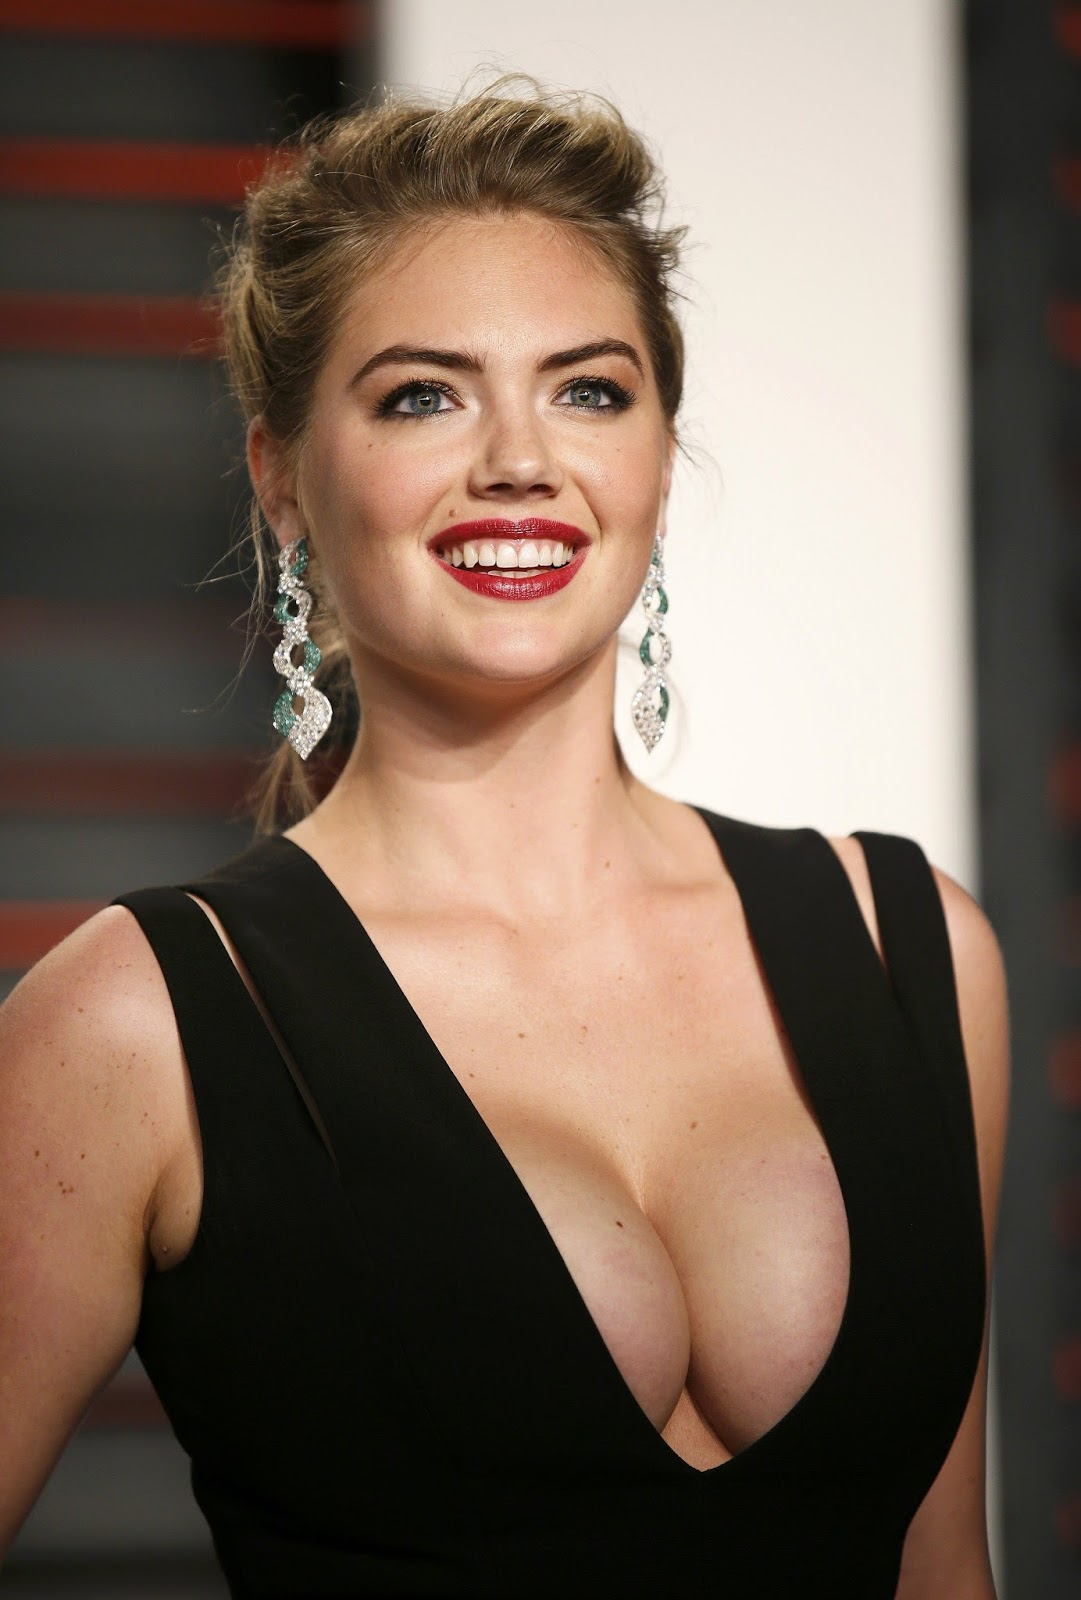 Kate Upton on Awards